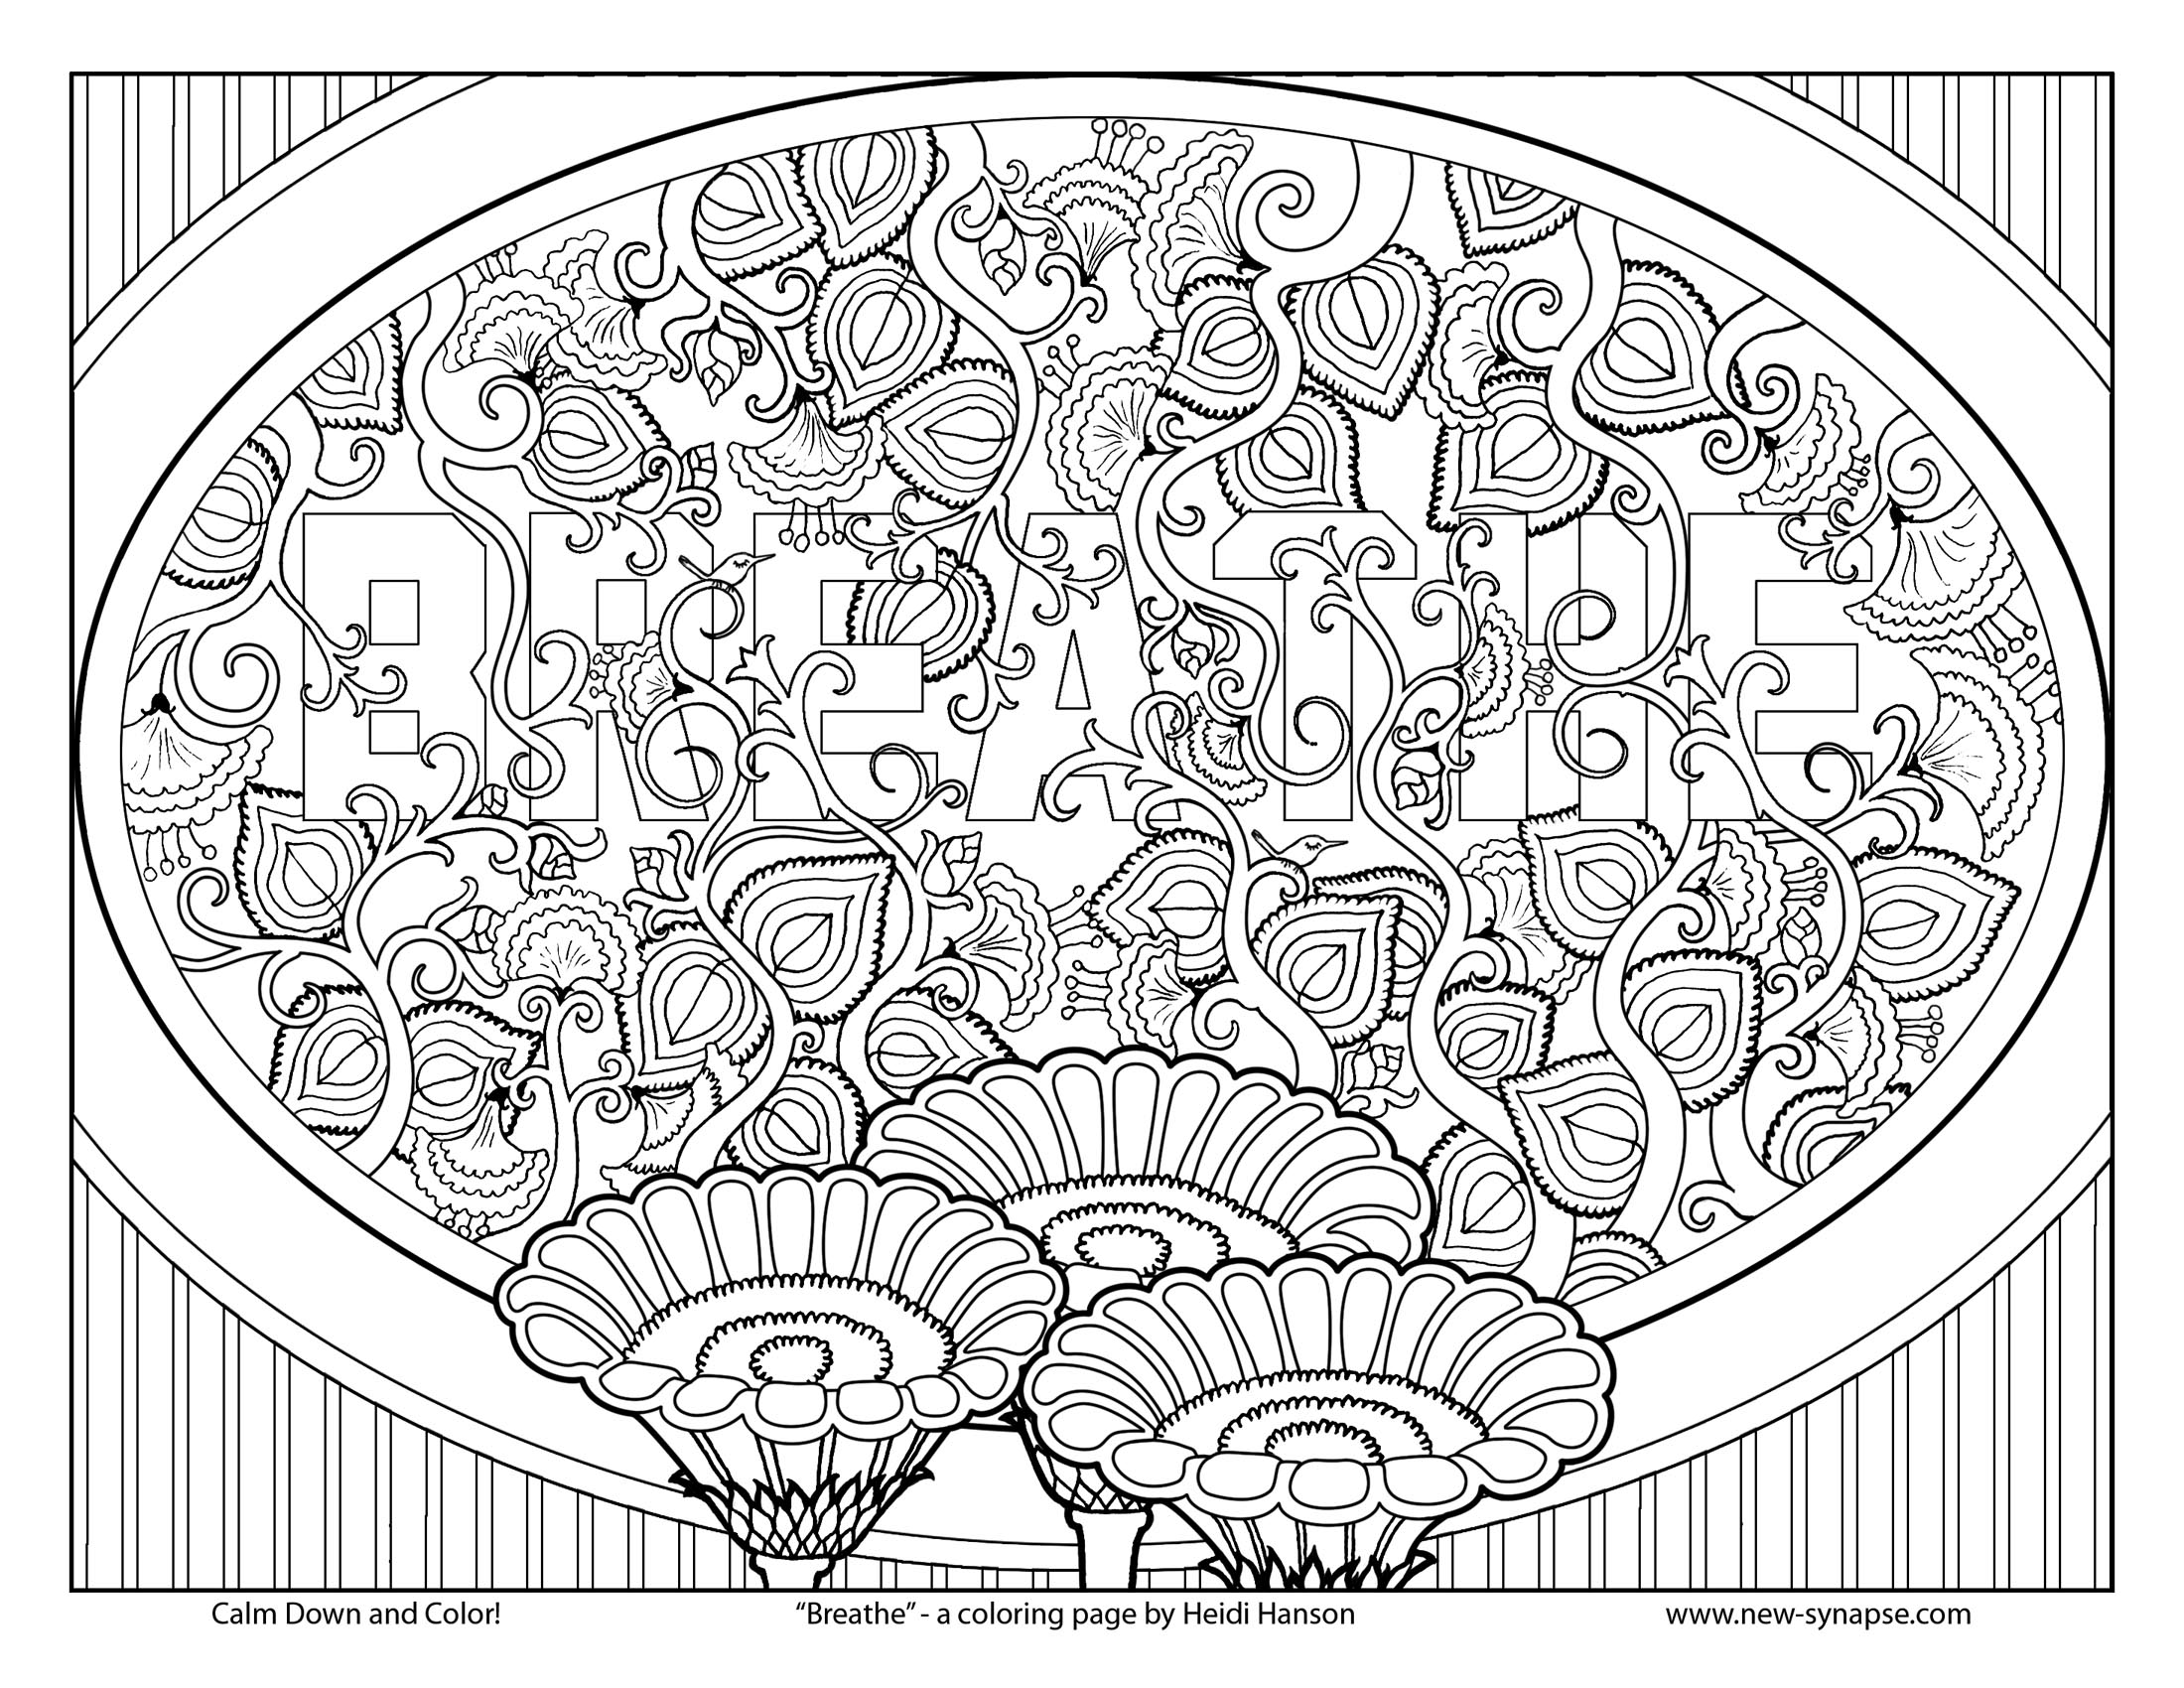 2200x1700 Therapy Coloring Pages To Download And Print For Free